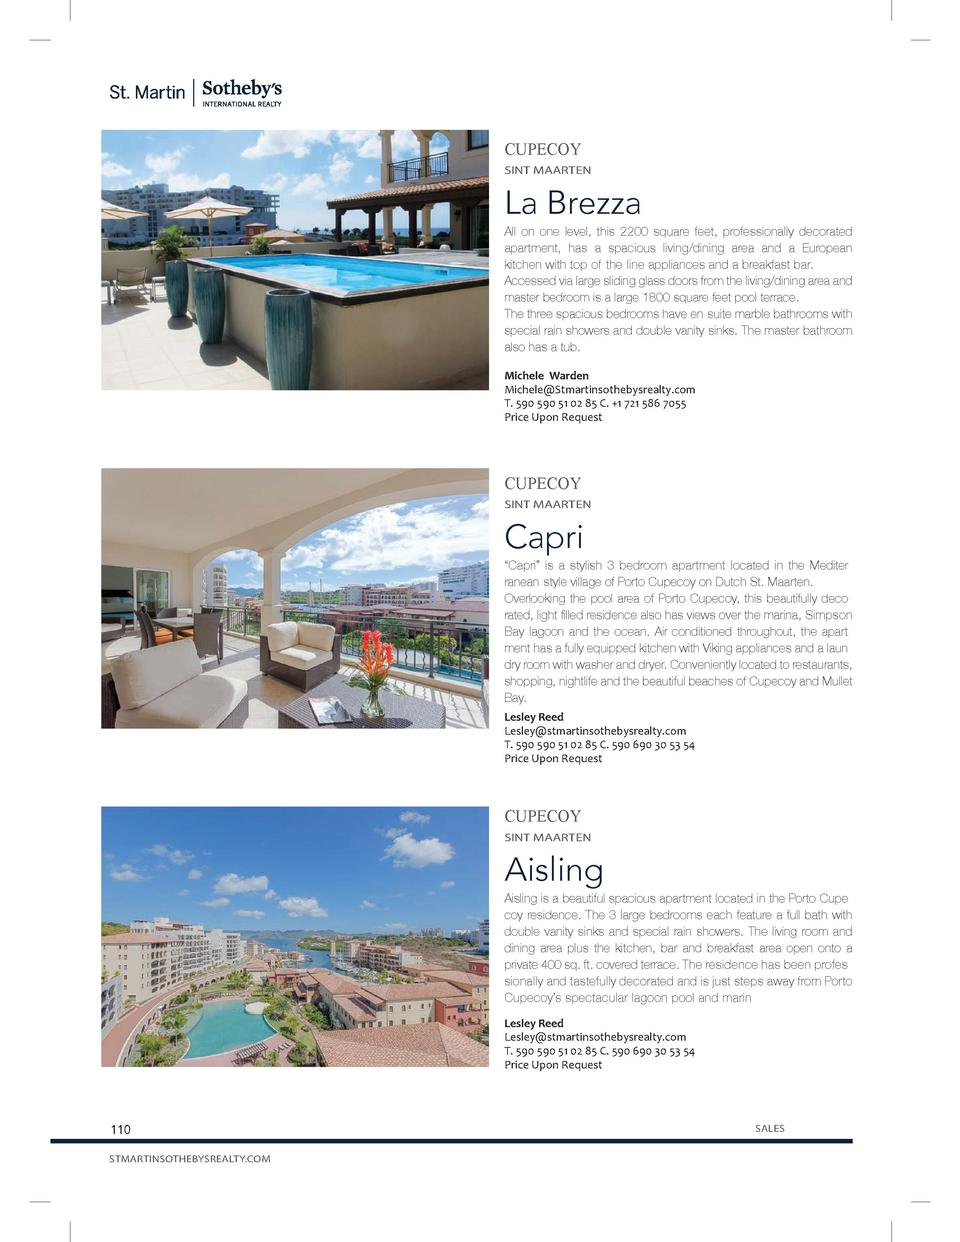 CUPECOY SINT MAARTEN  La Brezza  All on one level, this 2200 square feet, professionally decorated apartment, has a spacio...